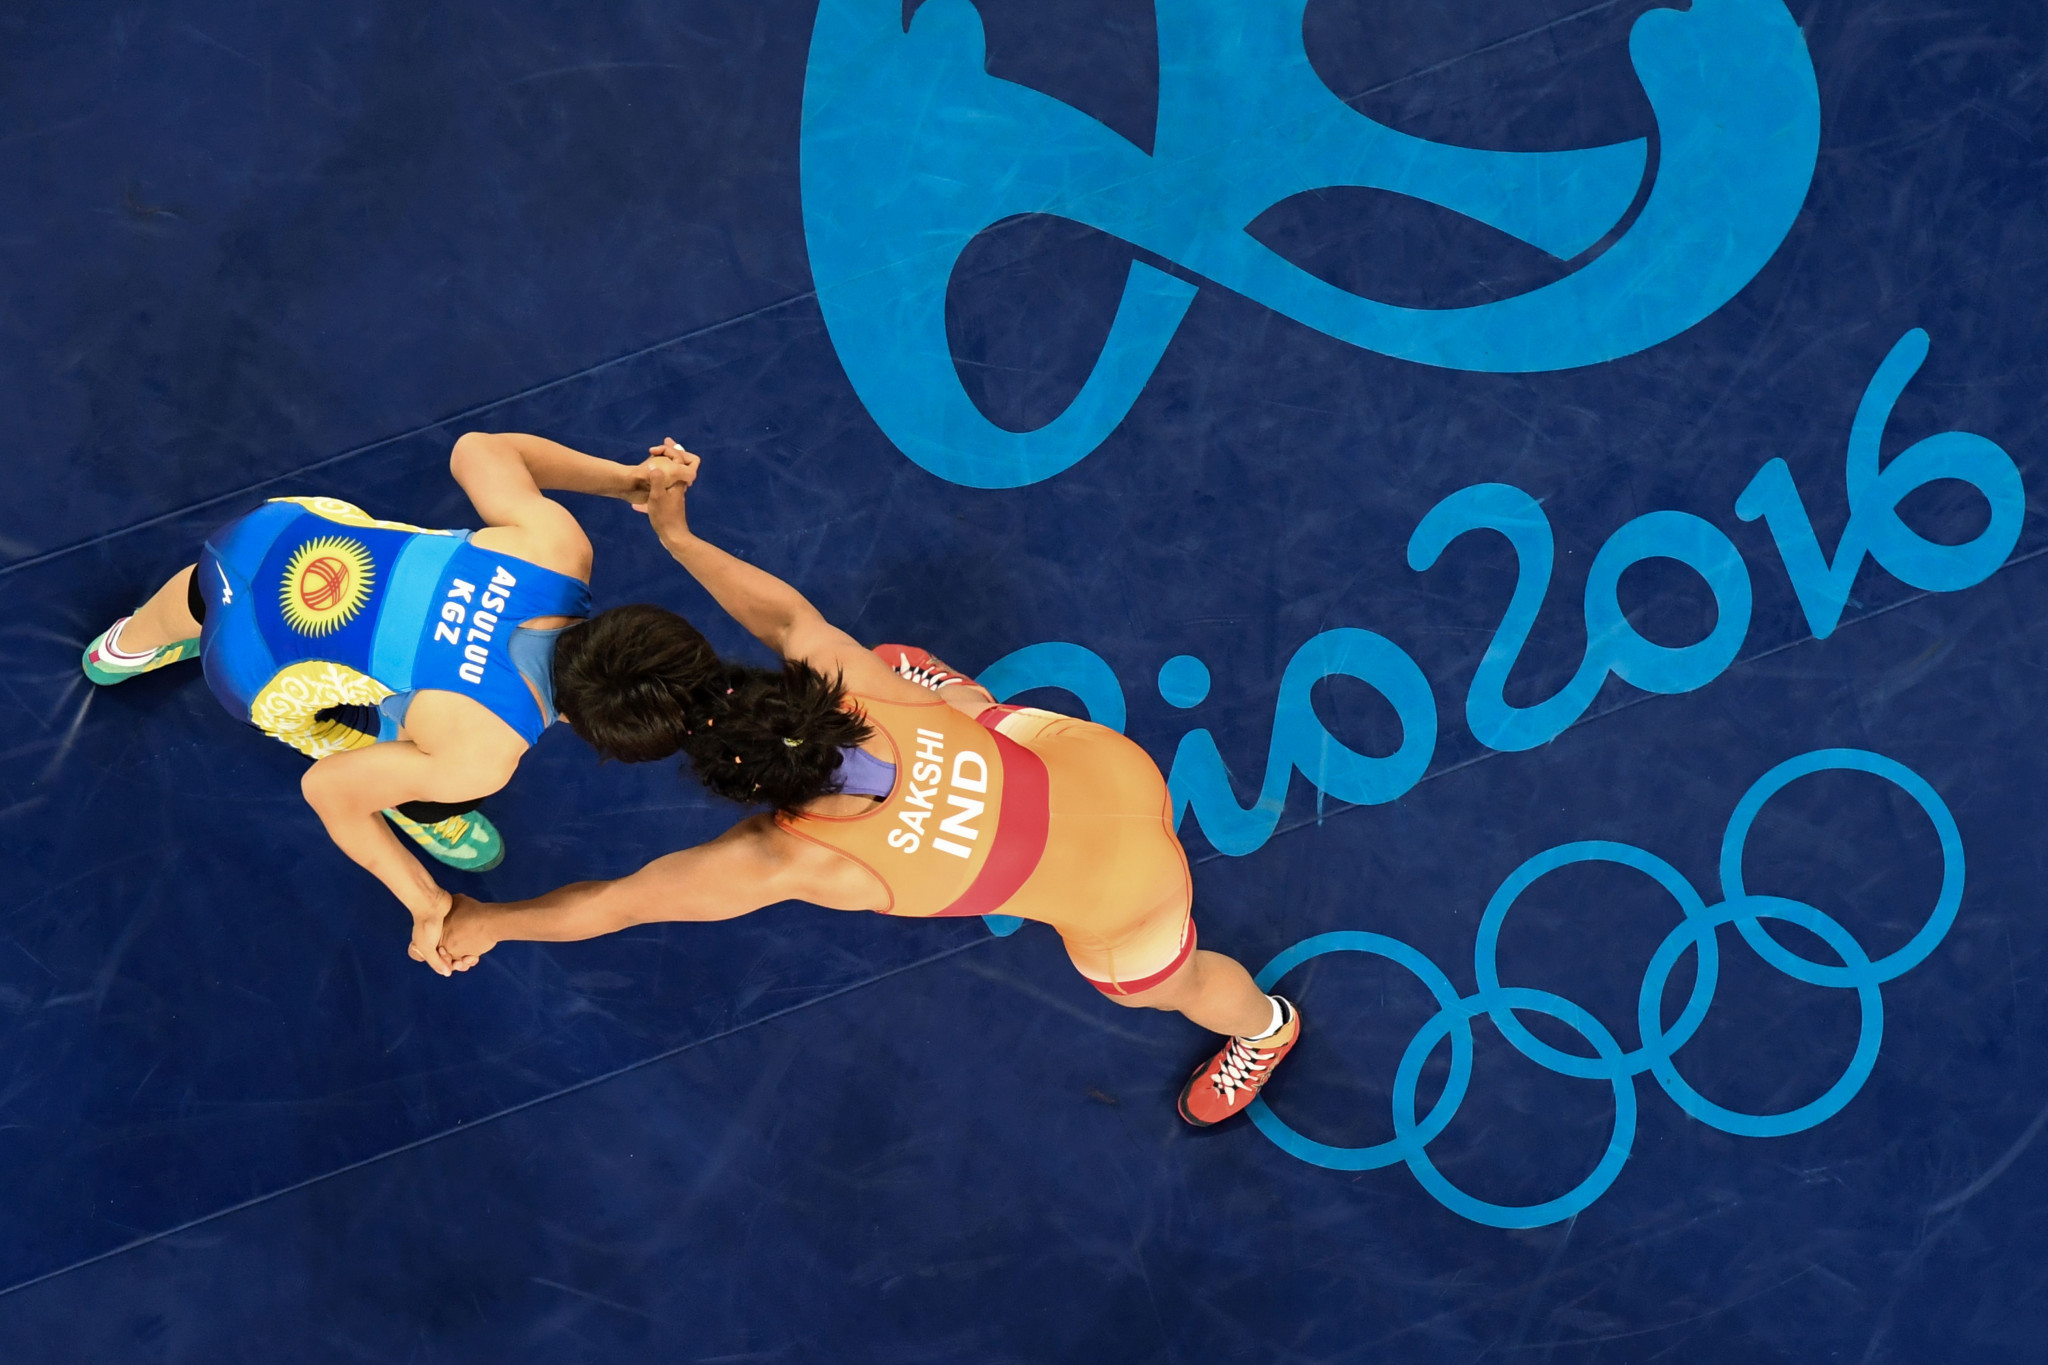 India will hope for an improved medal tally at Tokyo 2020 compared to their two medals at Rio 2016 ©Getty Images